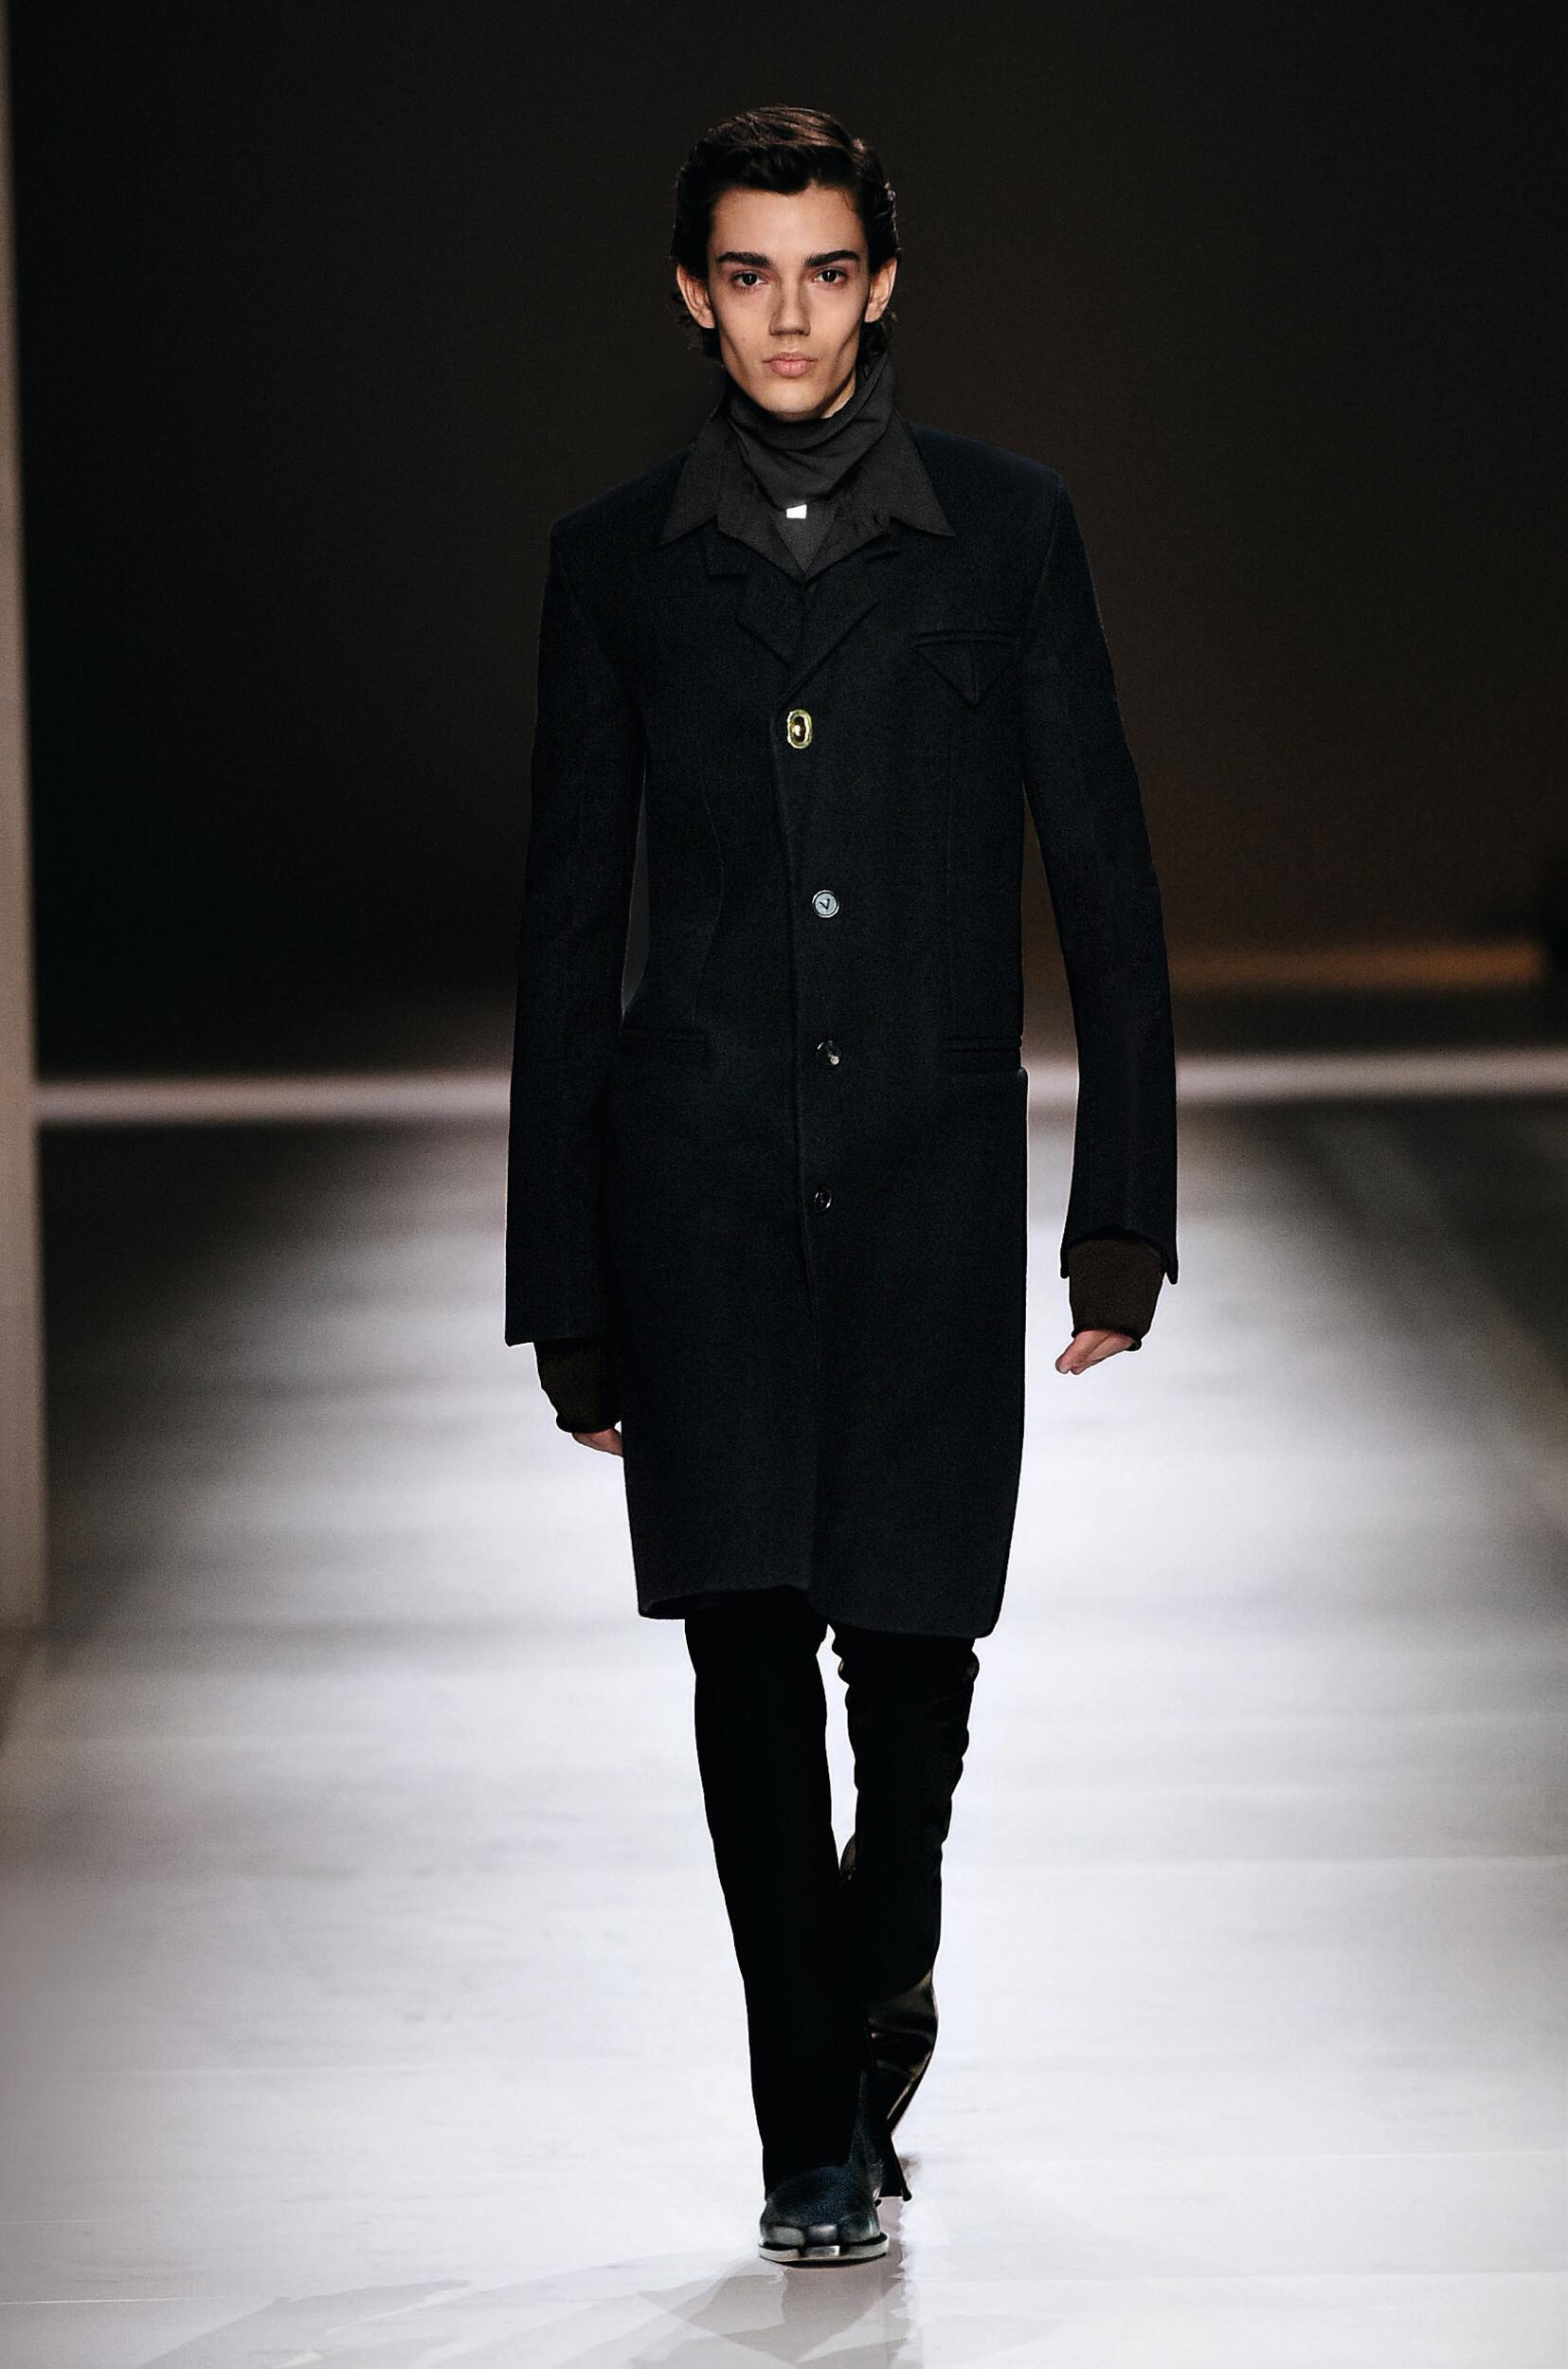 Bottega Veneta Fashion Show FW 2020